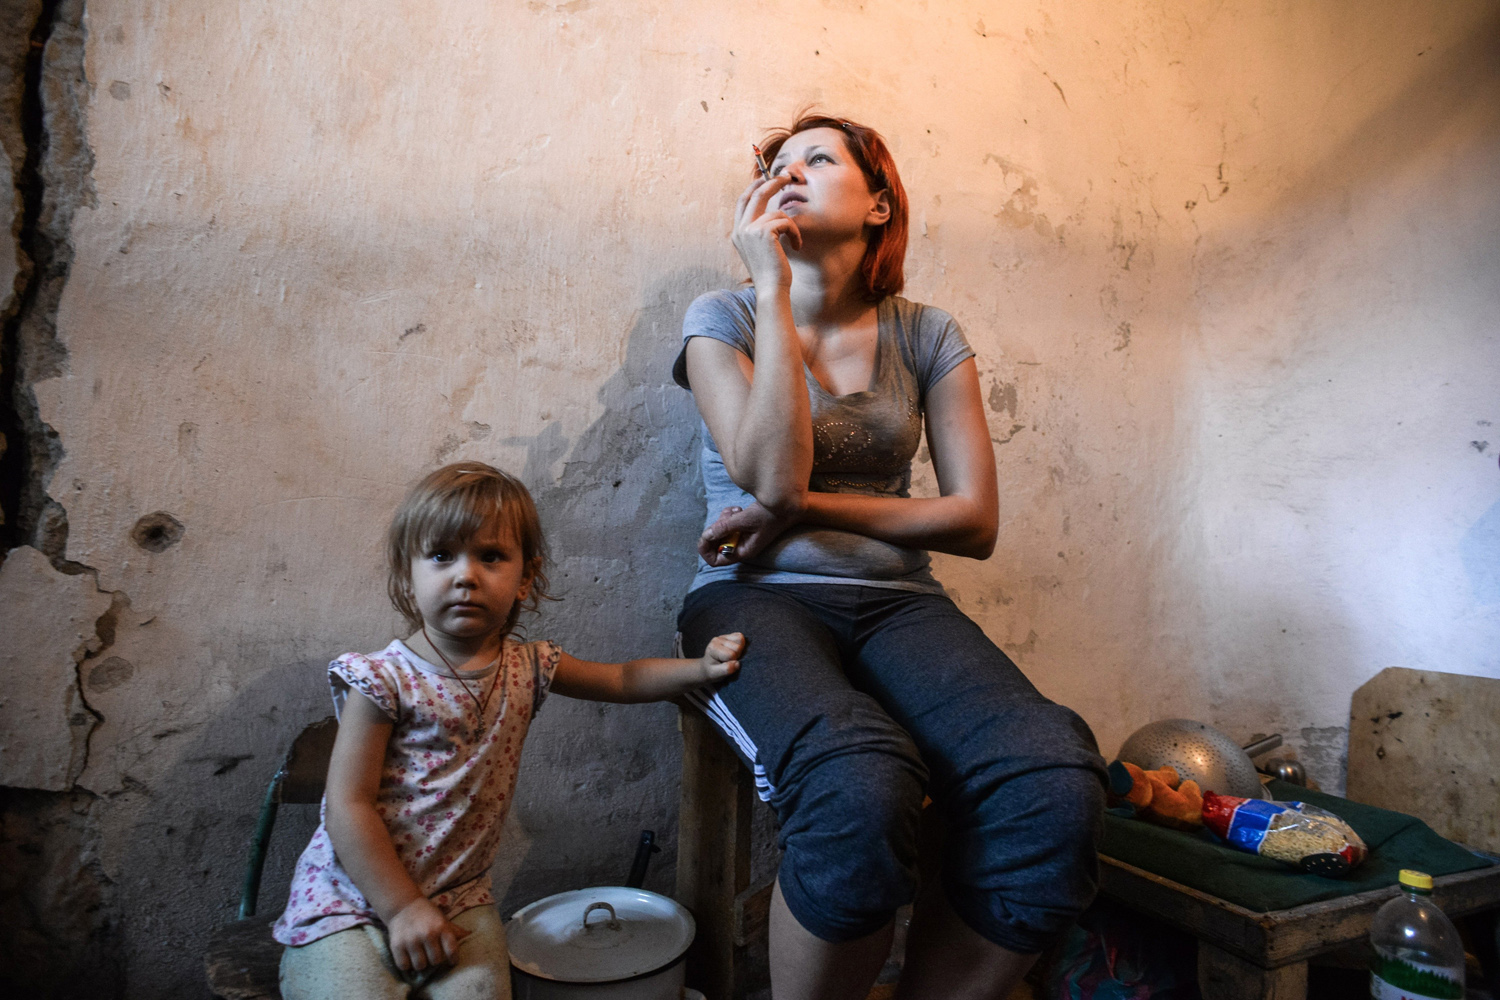 Sept. 1, 2014. A mother and child hide in a bomb shelter in Petrovskiy district in Donetsk, eastern Ukraine. The Petrovskiy district of Donetsk is currently a frontline and one of the districts which suffered the most from the artillery fights between Ukrainian army and Pro-Pussian rebels.